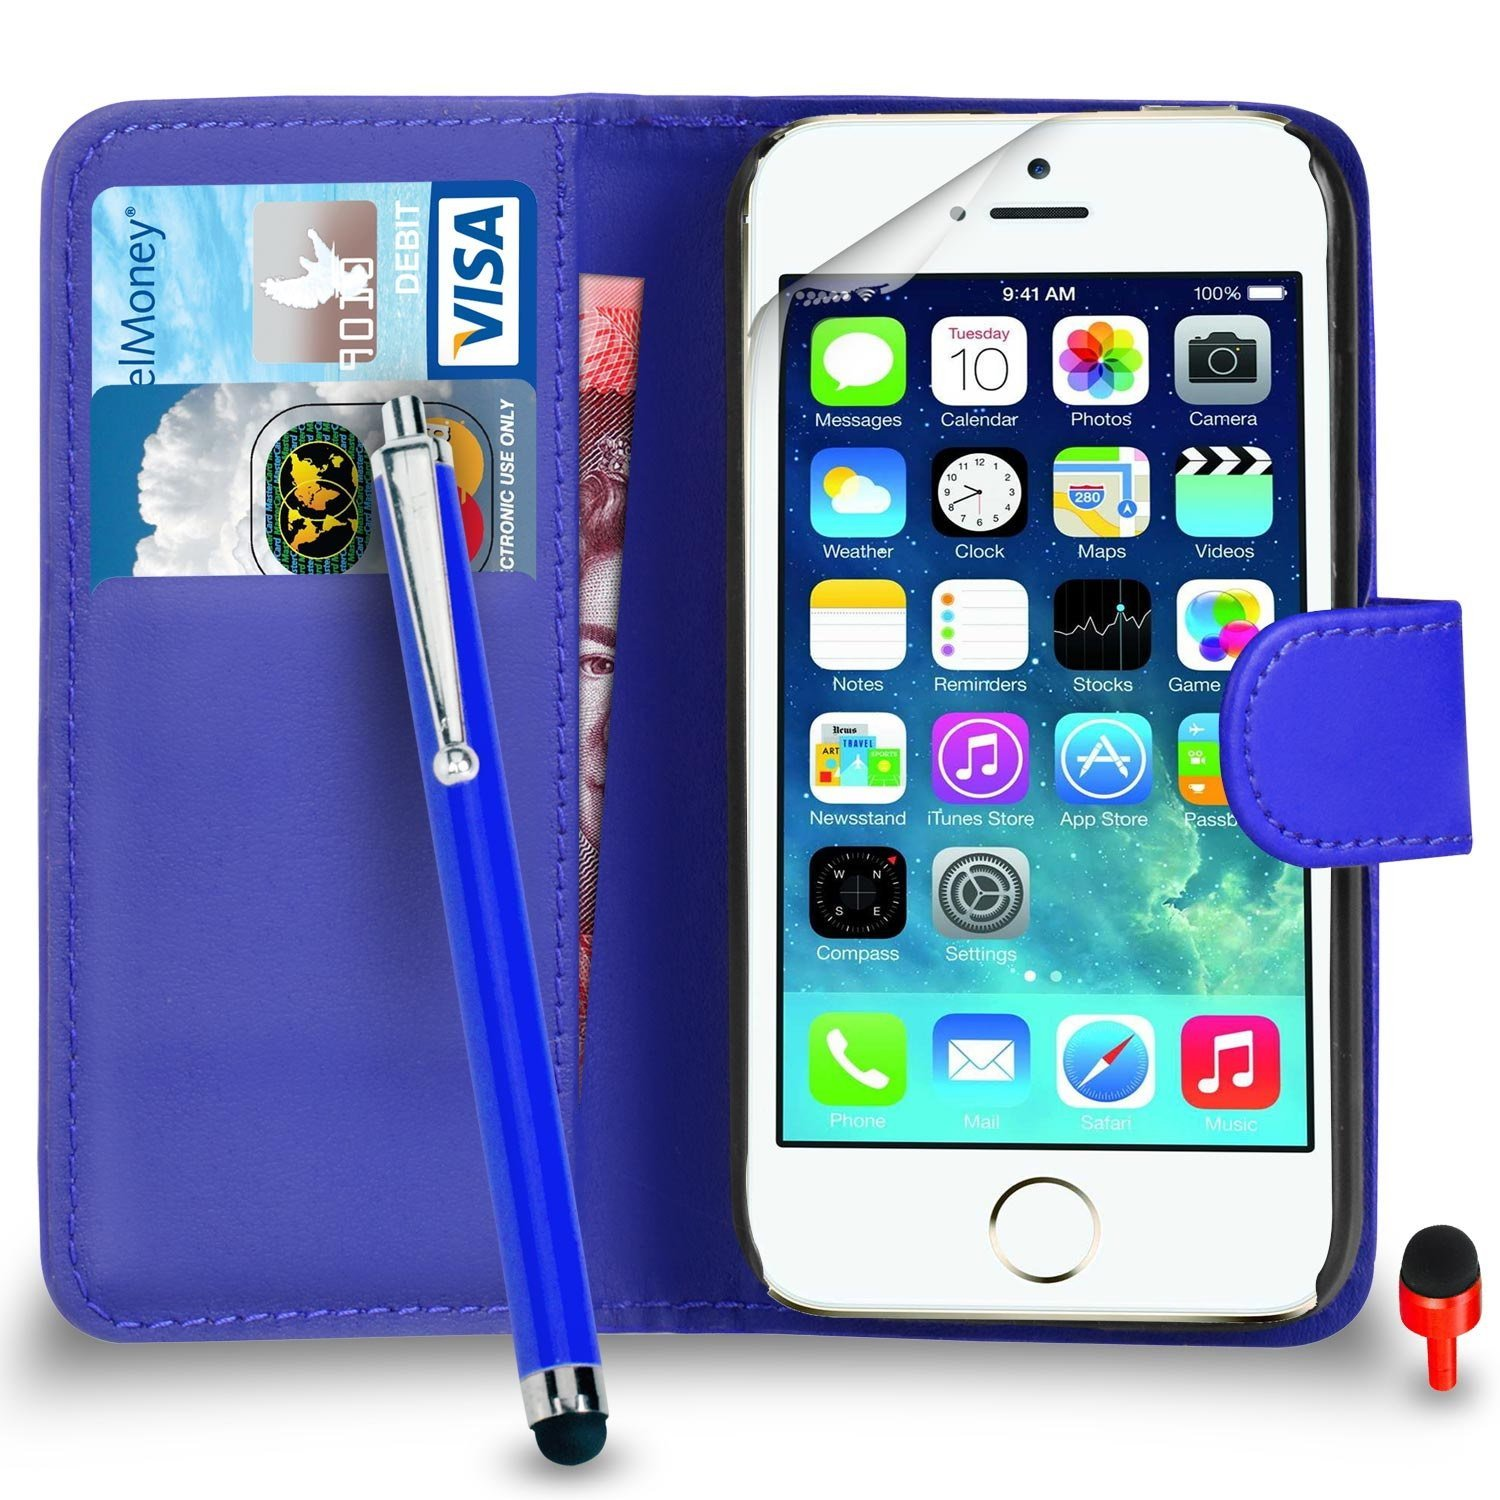 Apple iPhone 5 / 5S Premium Leather Blue Wallet Flip Case Cover Pouch + Big Touch Stylus PenRED DS+ Screen Protector & Polishing Cloth SVL2 BY SHUKAN®, (WALLET BLUE)